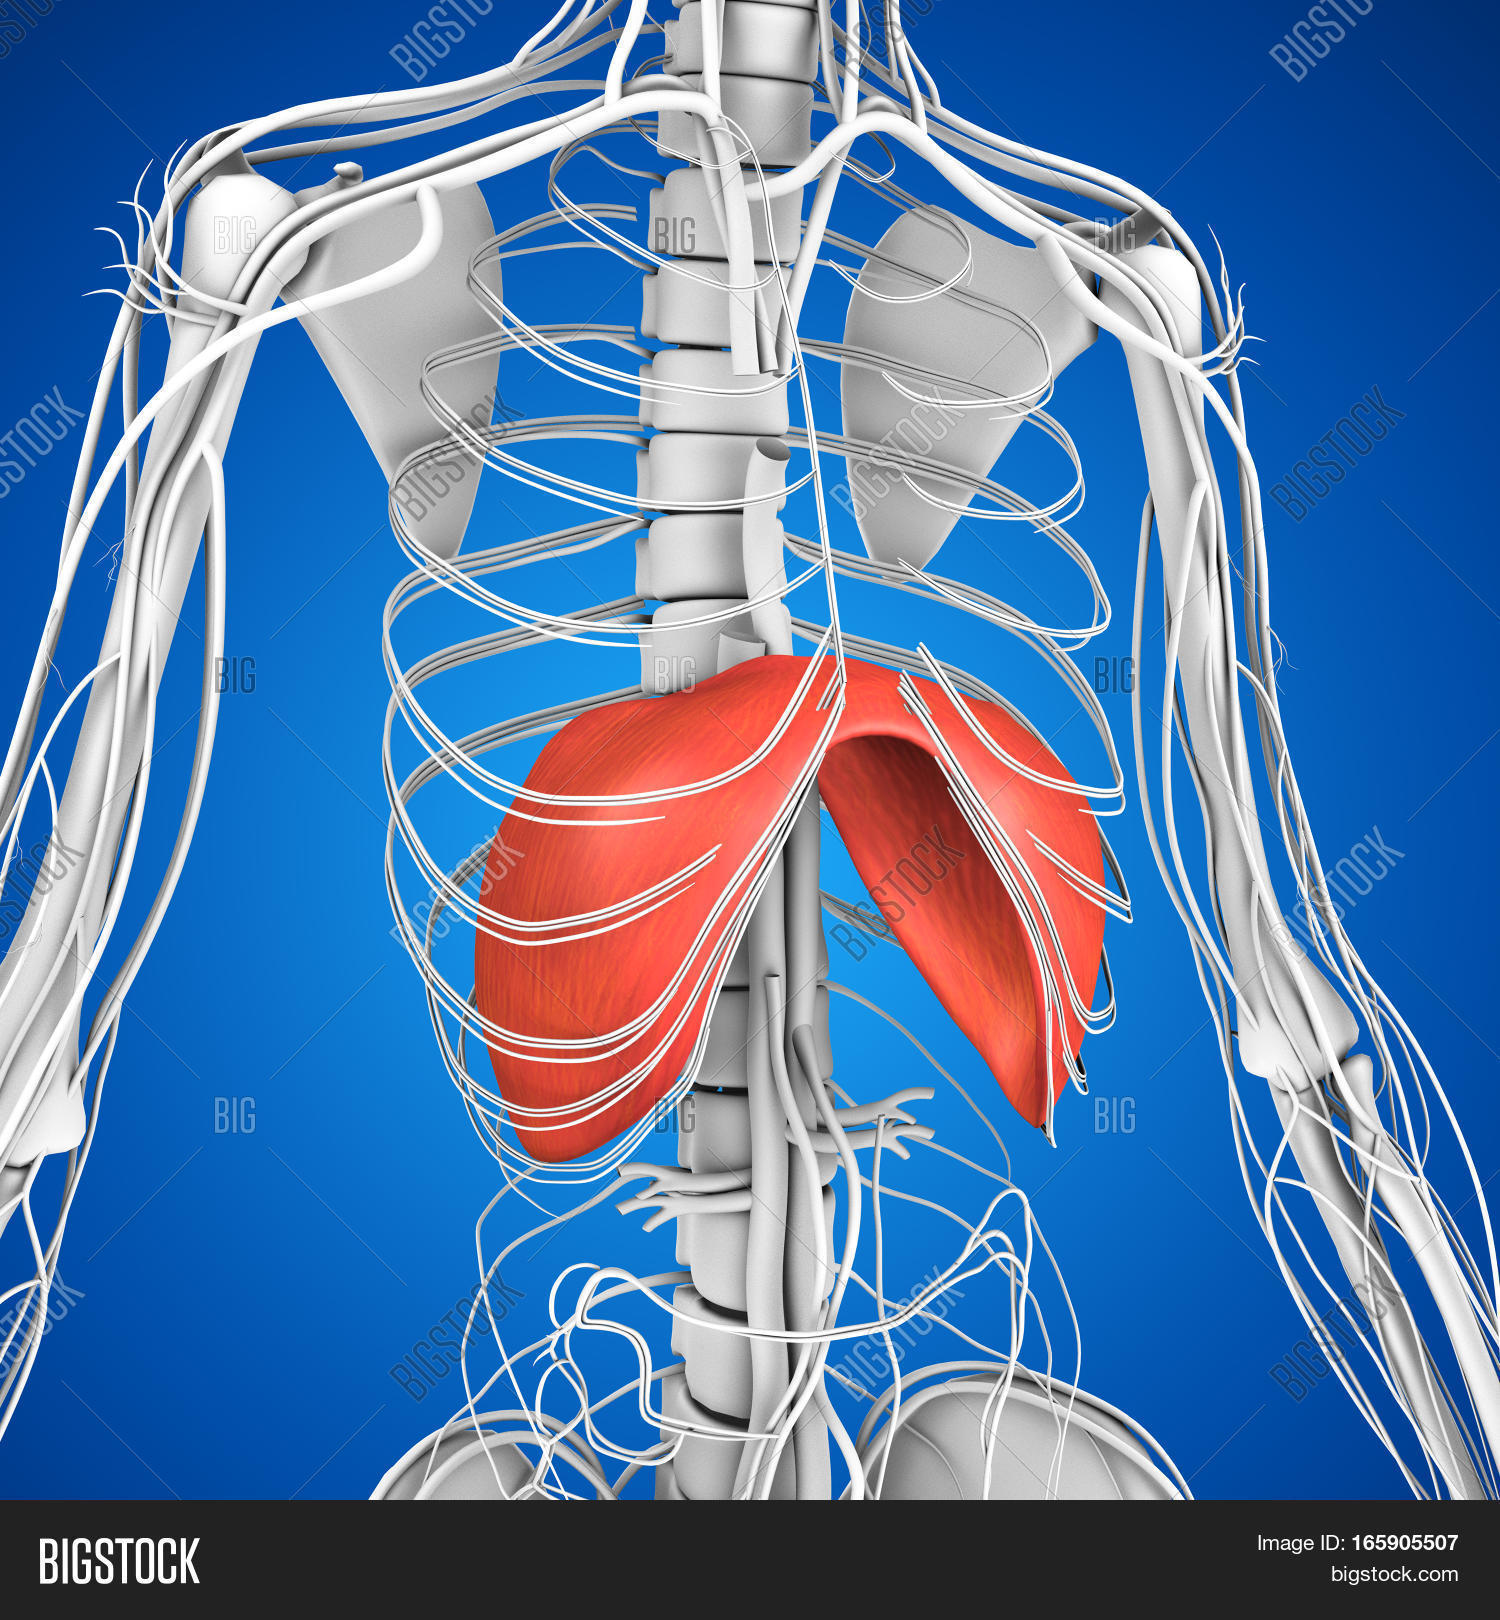 Human Anatomy Image Photo Free Trial Bigstock